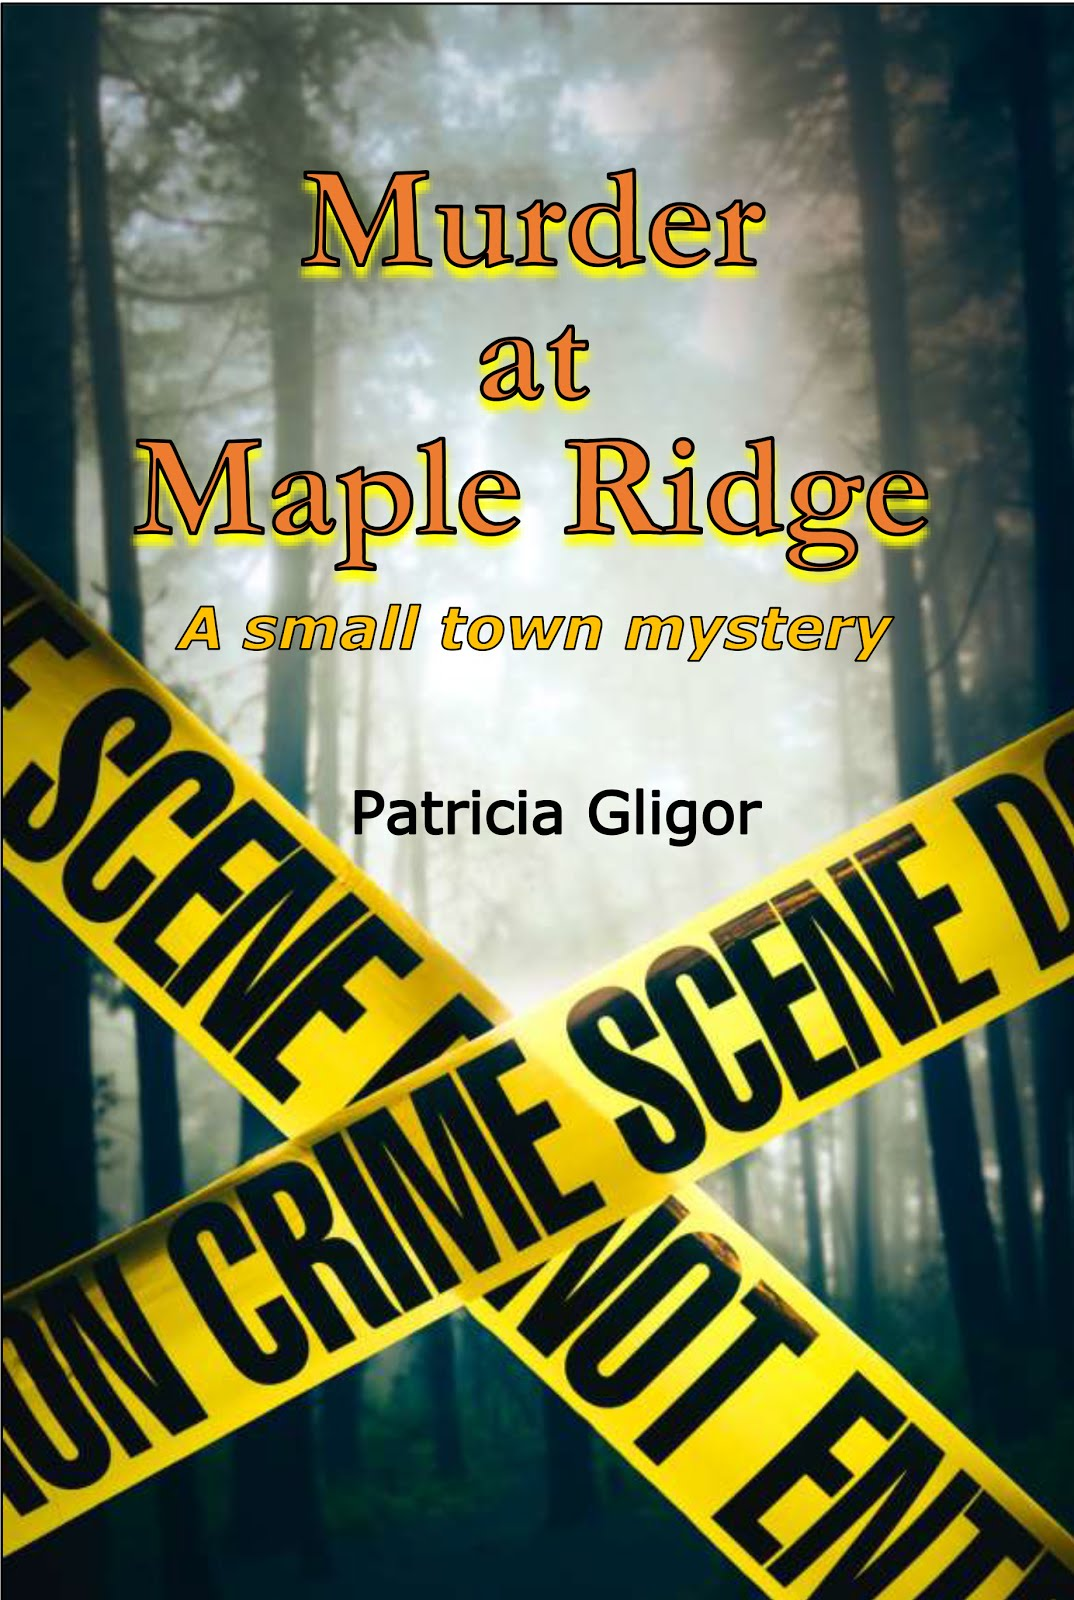 The second Small Town Mystery